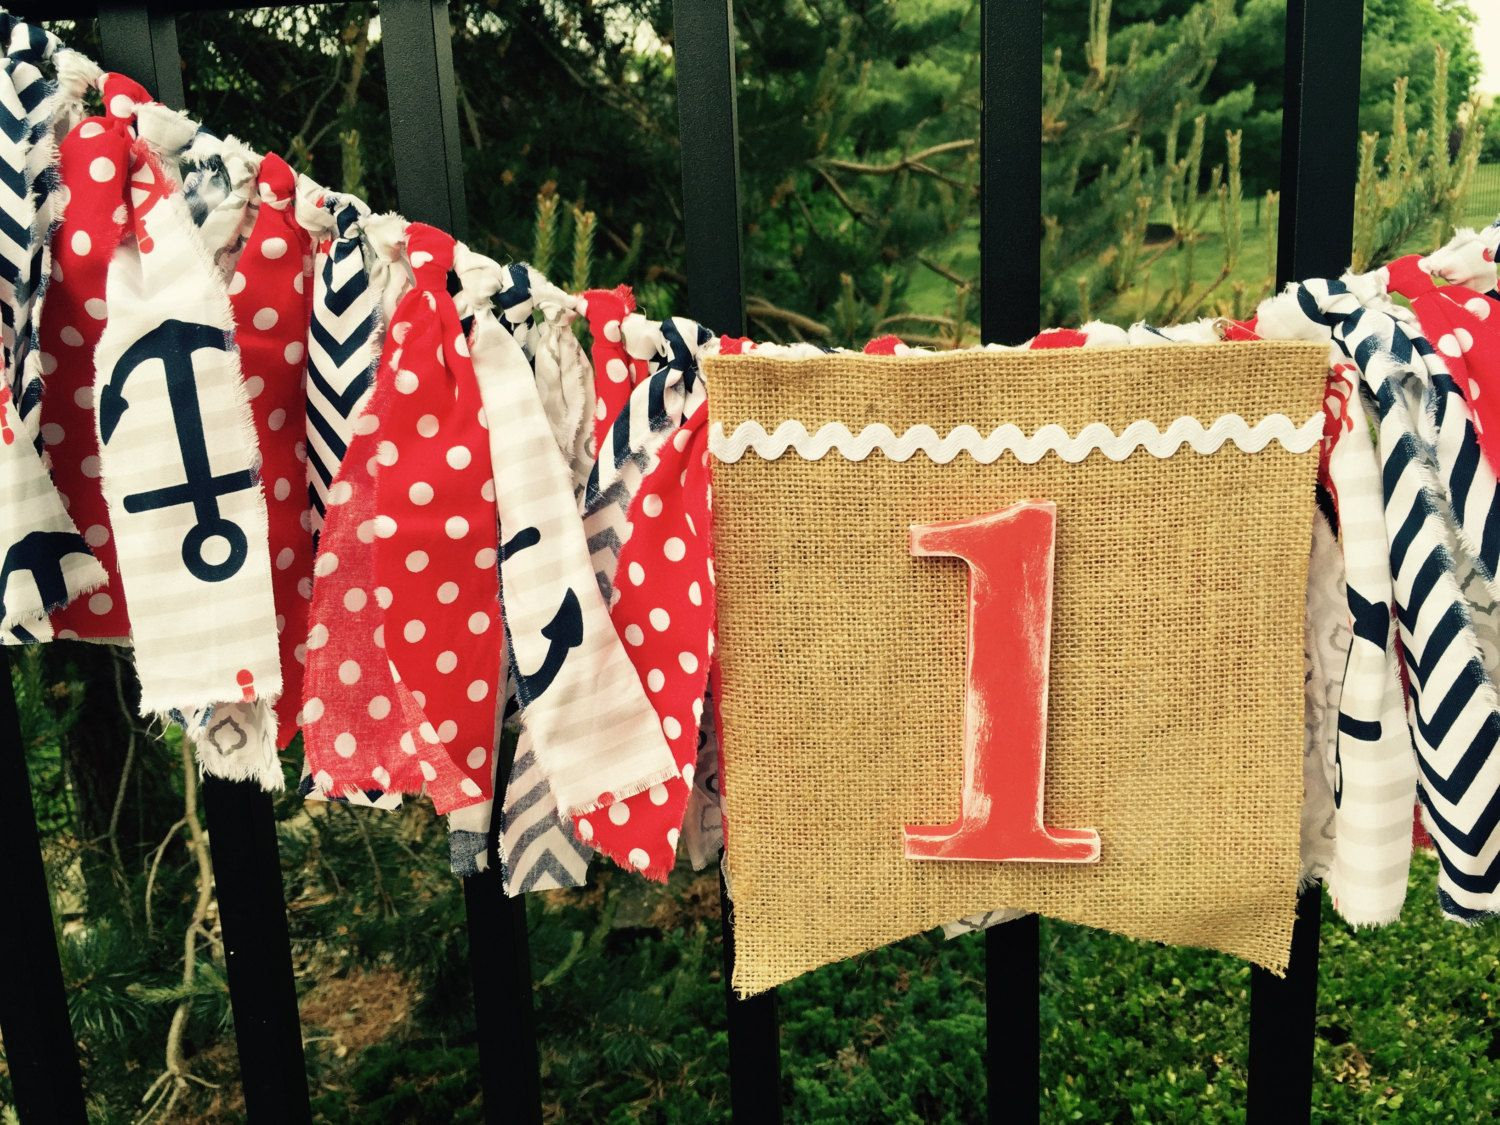 Nautical birthday fabric banner garland high chair bunting by Pattycakespapers on Etsy